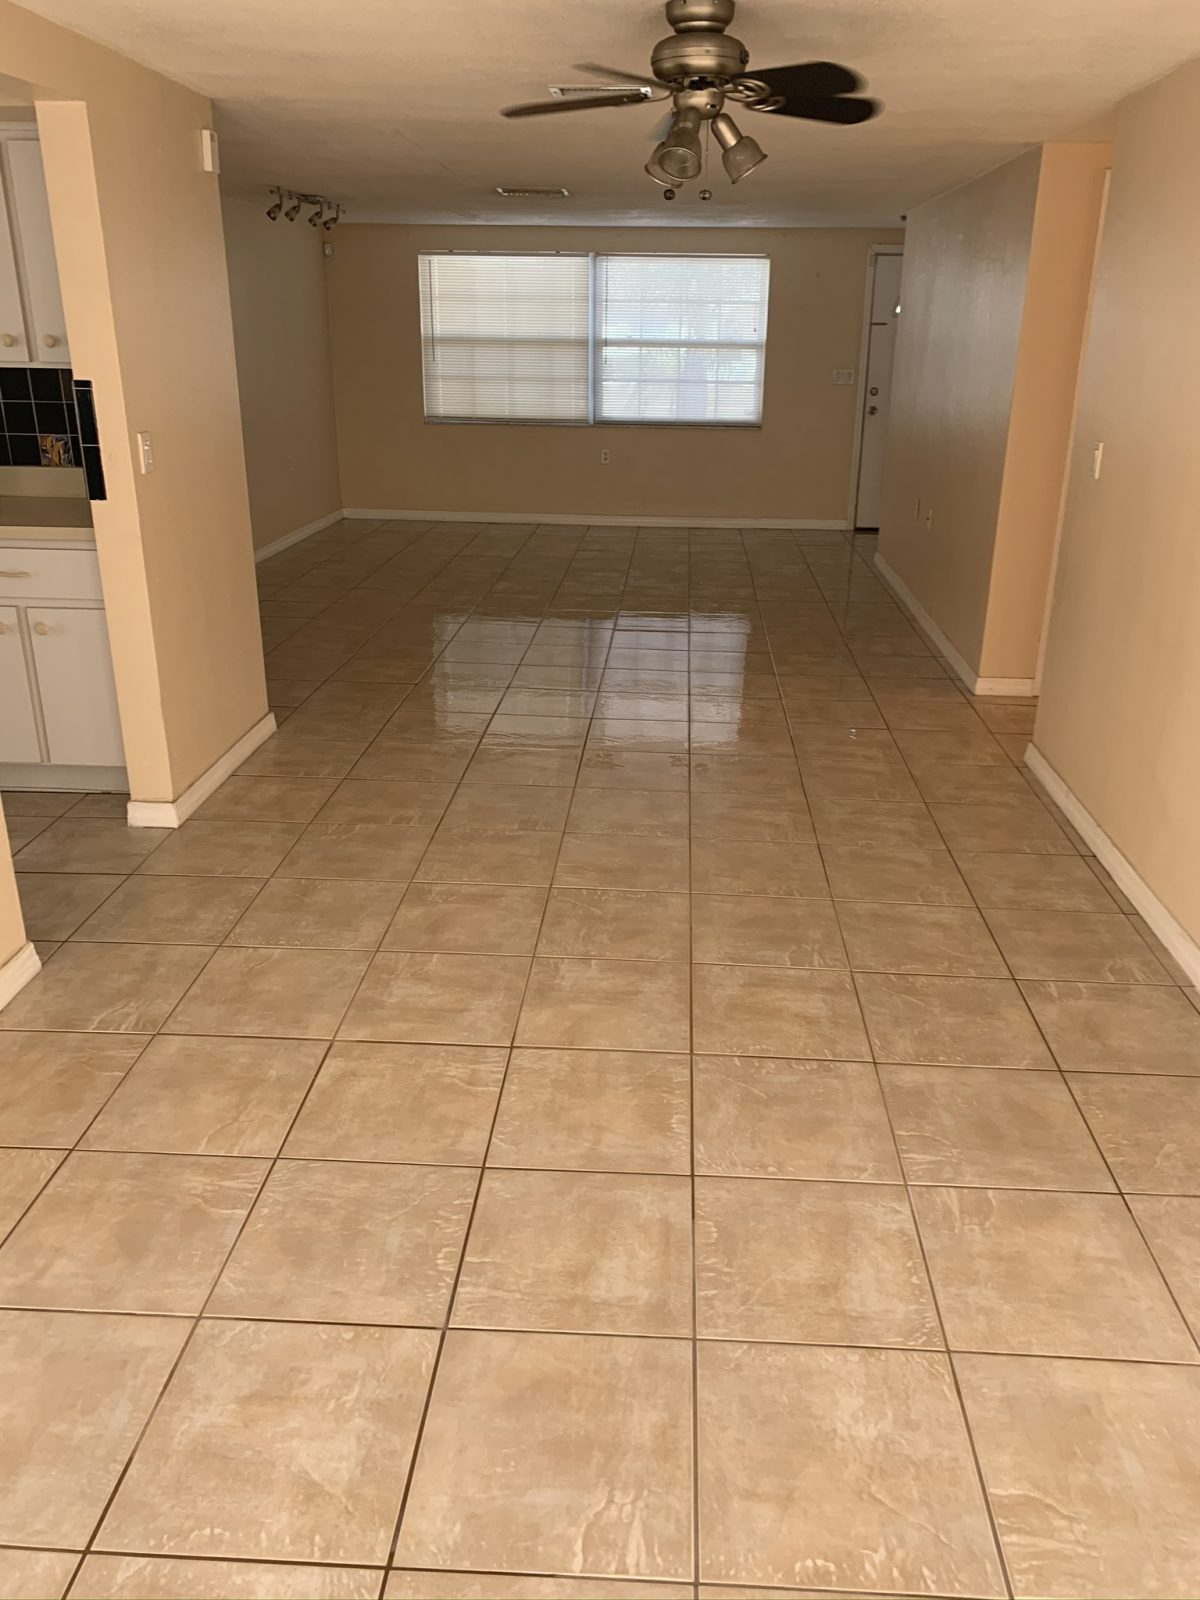 Professional Tile & Grout Cleaning Trinity Florida by Howards Cleaning Service